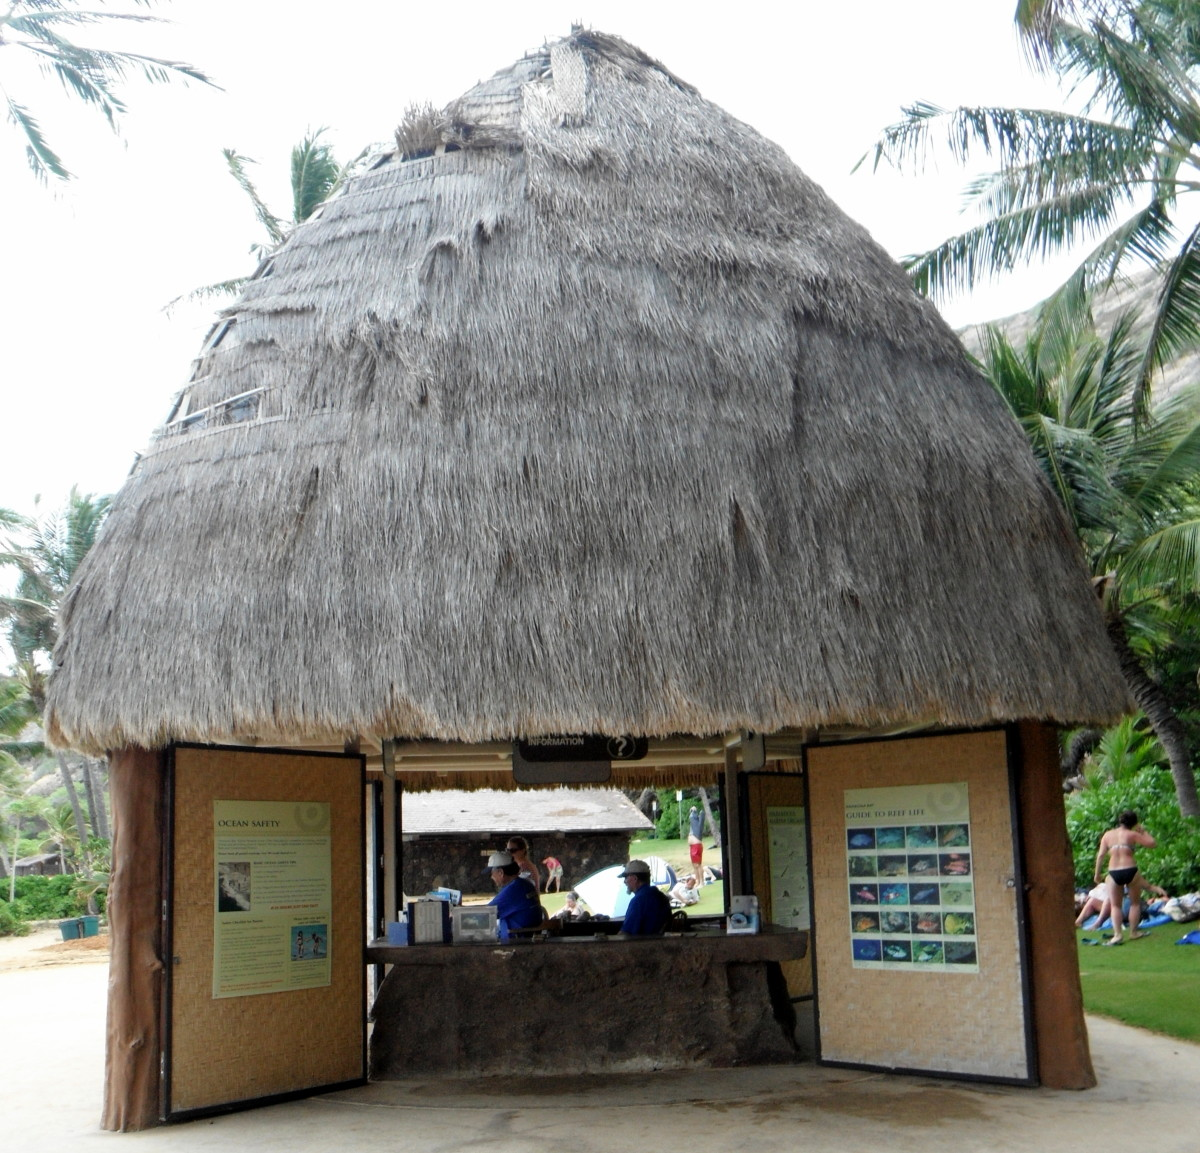 Education booth